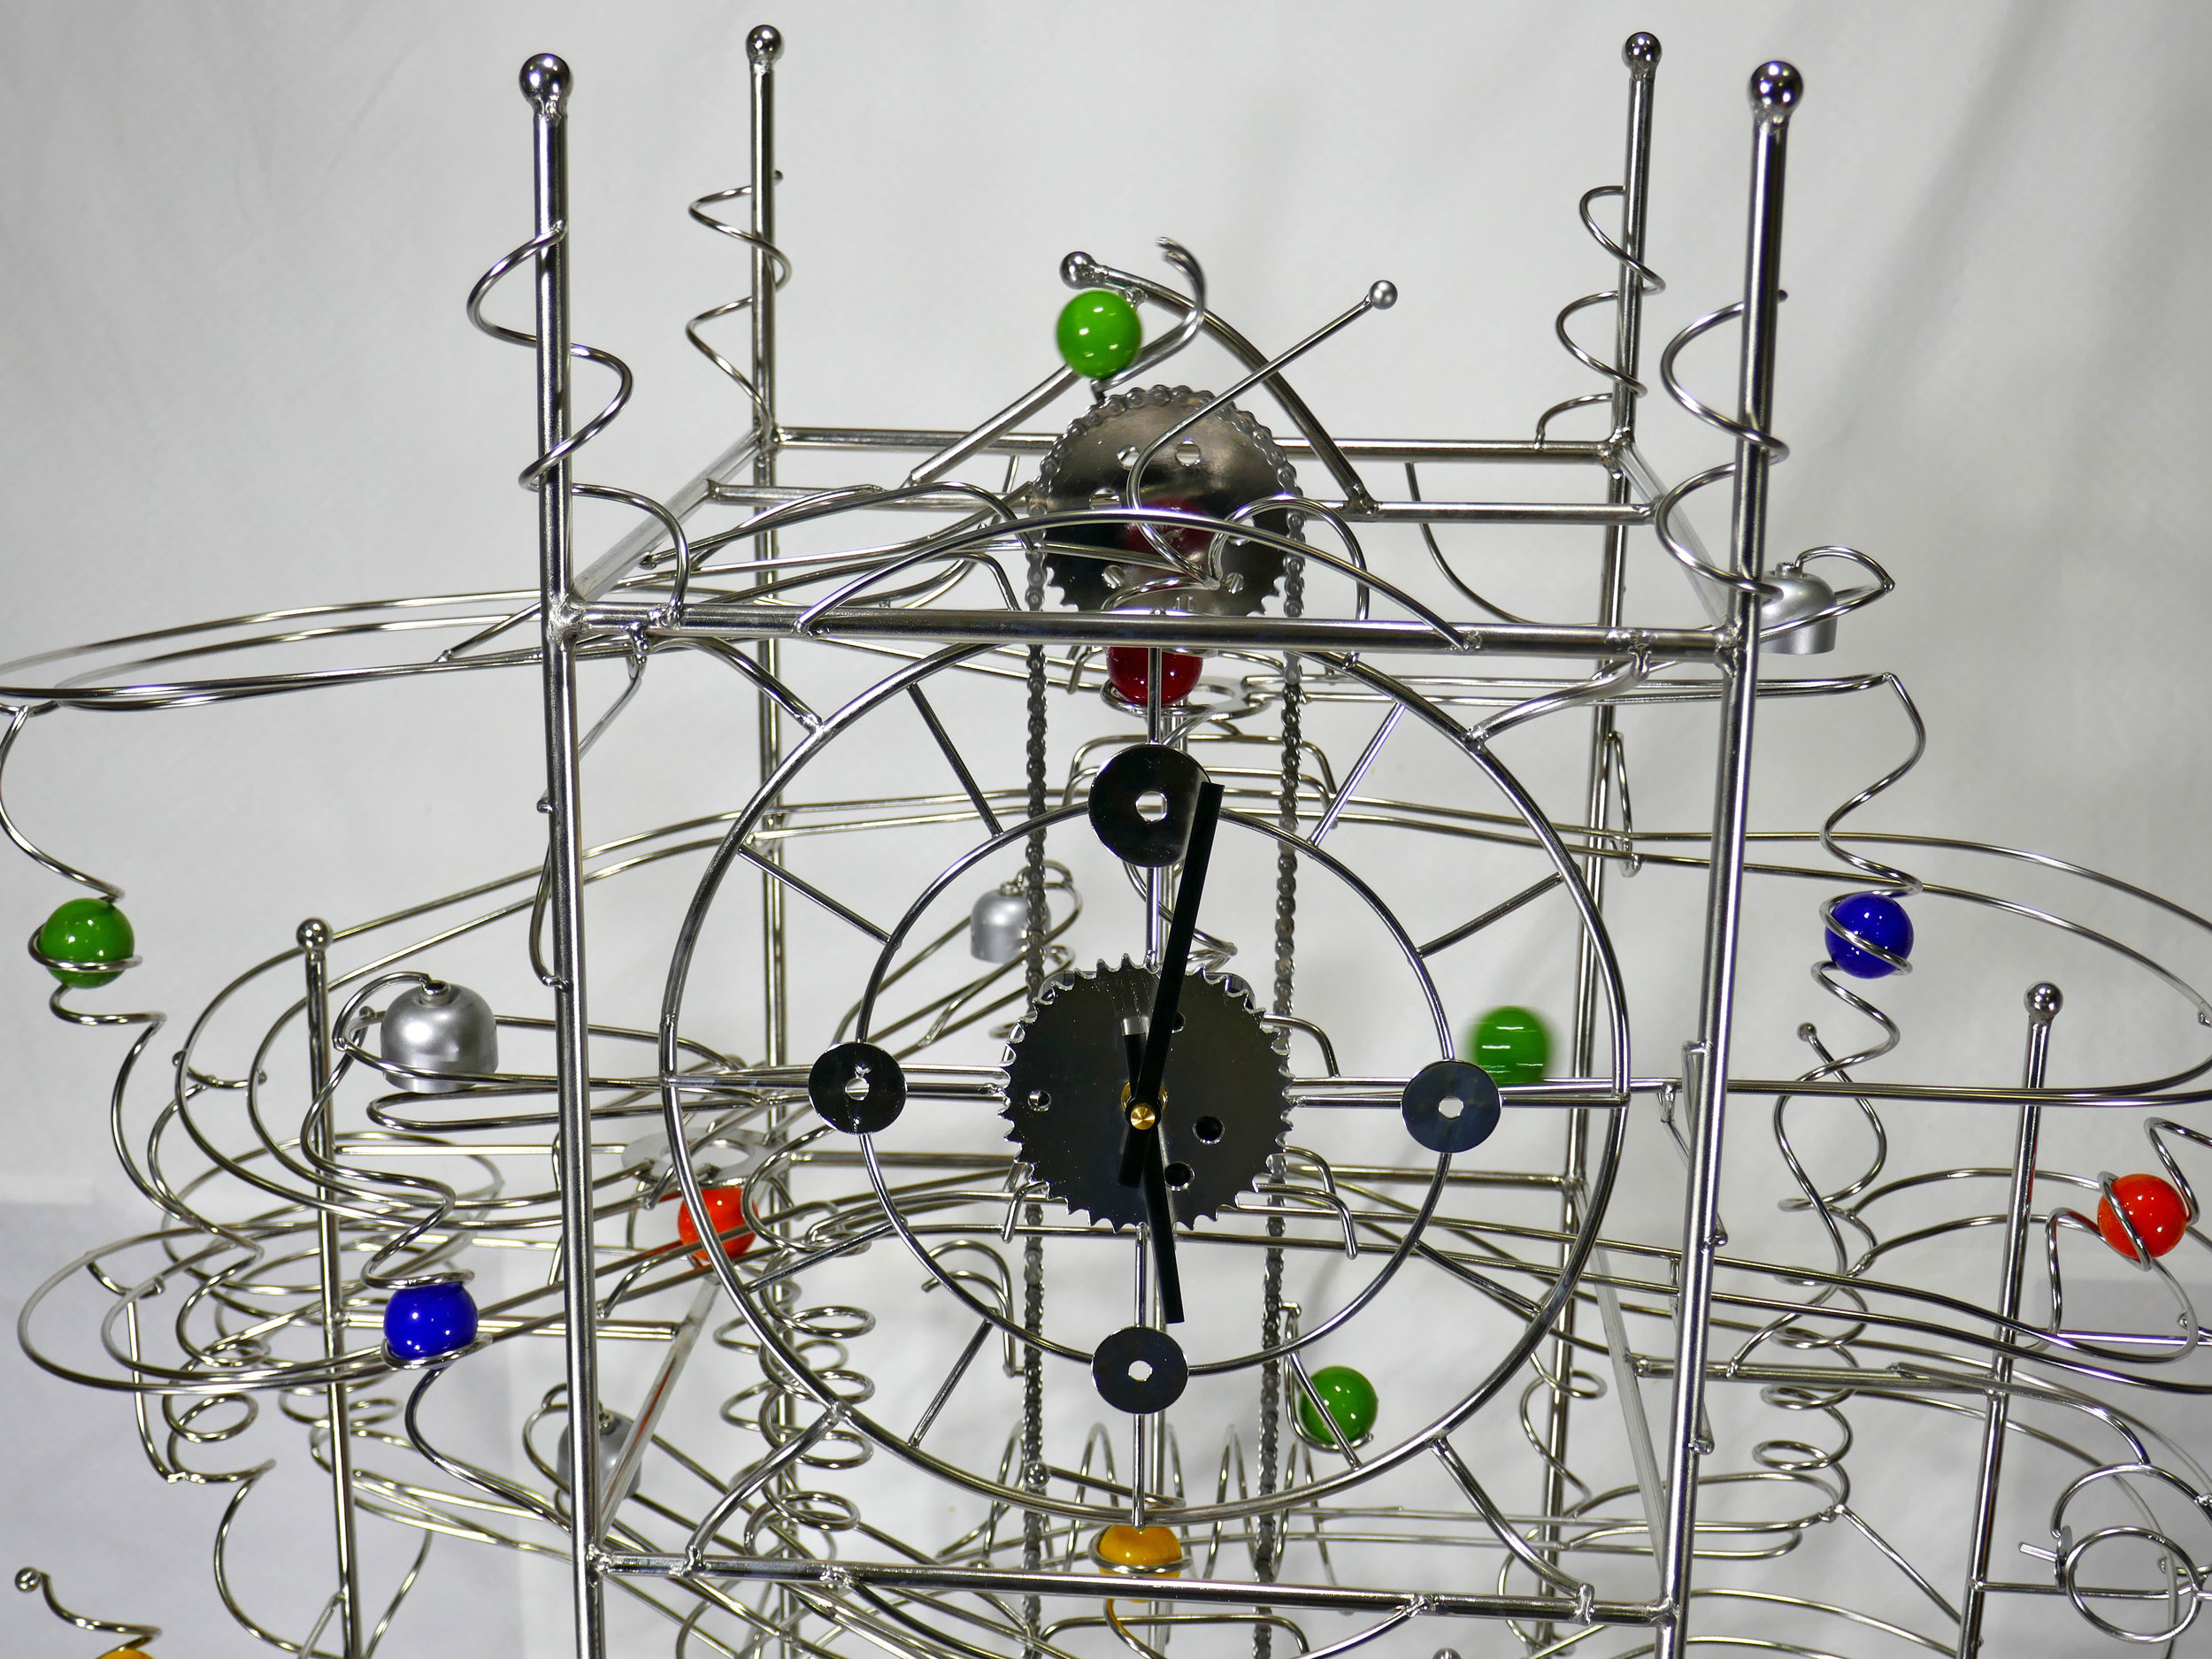 Rolling Ball marble run kinetic art by Stephen Jendro front view - Stephen Jendro